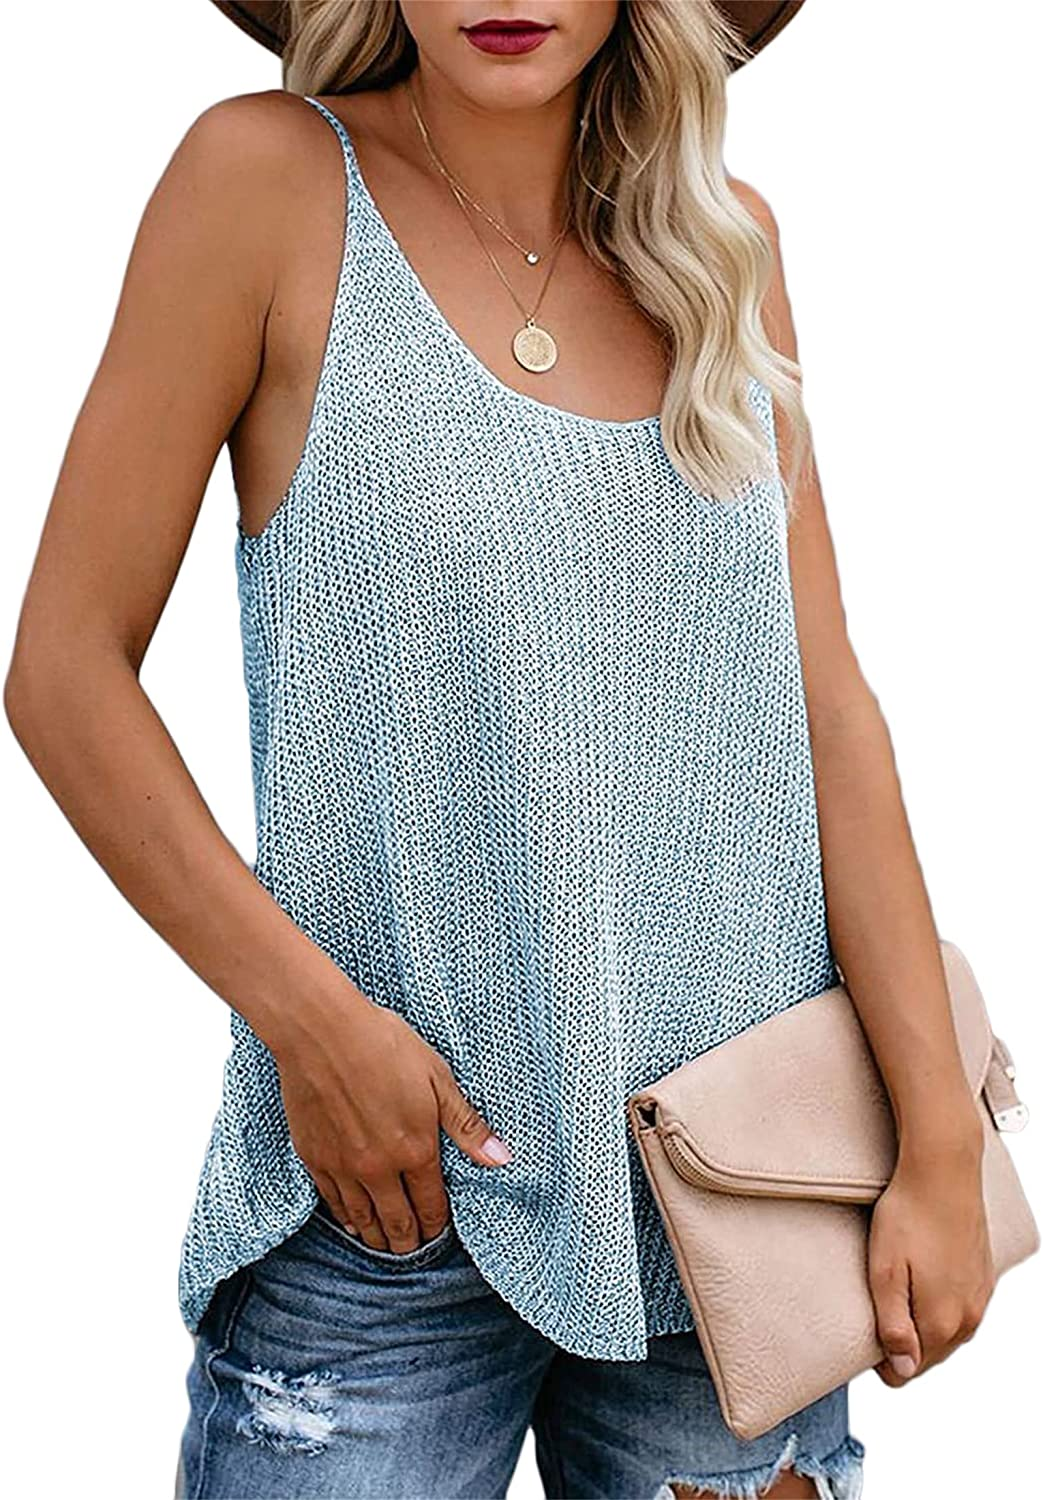 Andongnywell Womens Sleeveless Round Neck Sweater Vest Summer Fall Tank Tops Knit Loose Cami Shirts Blouses Vests